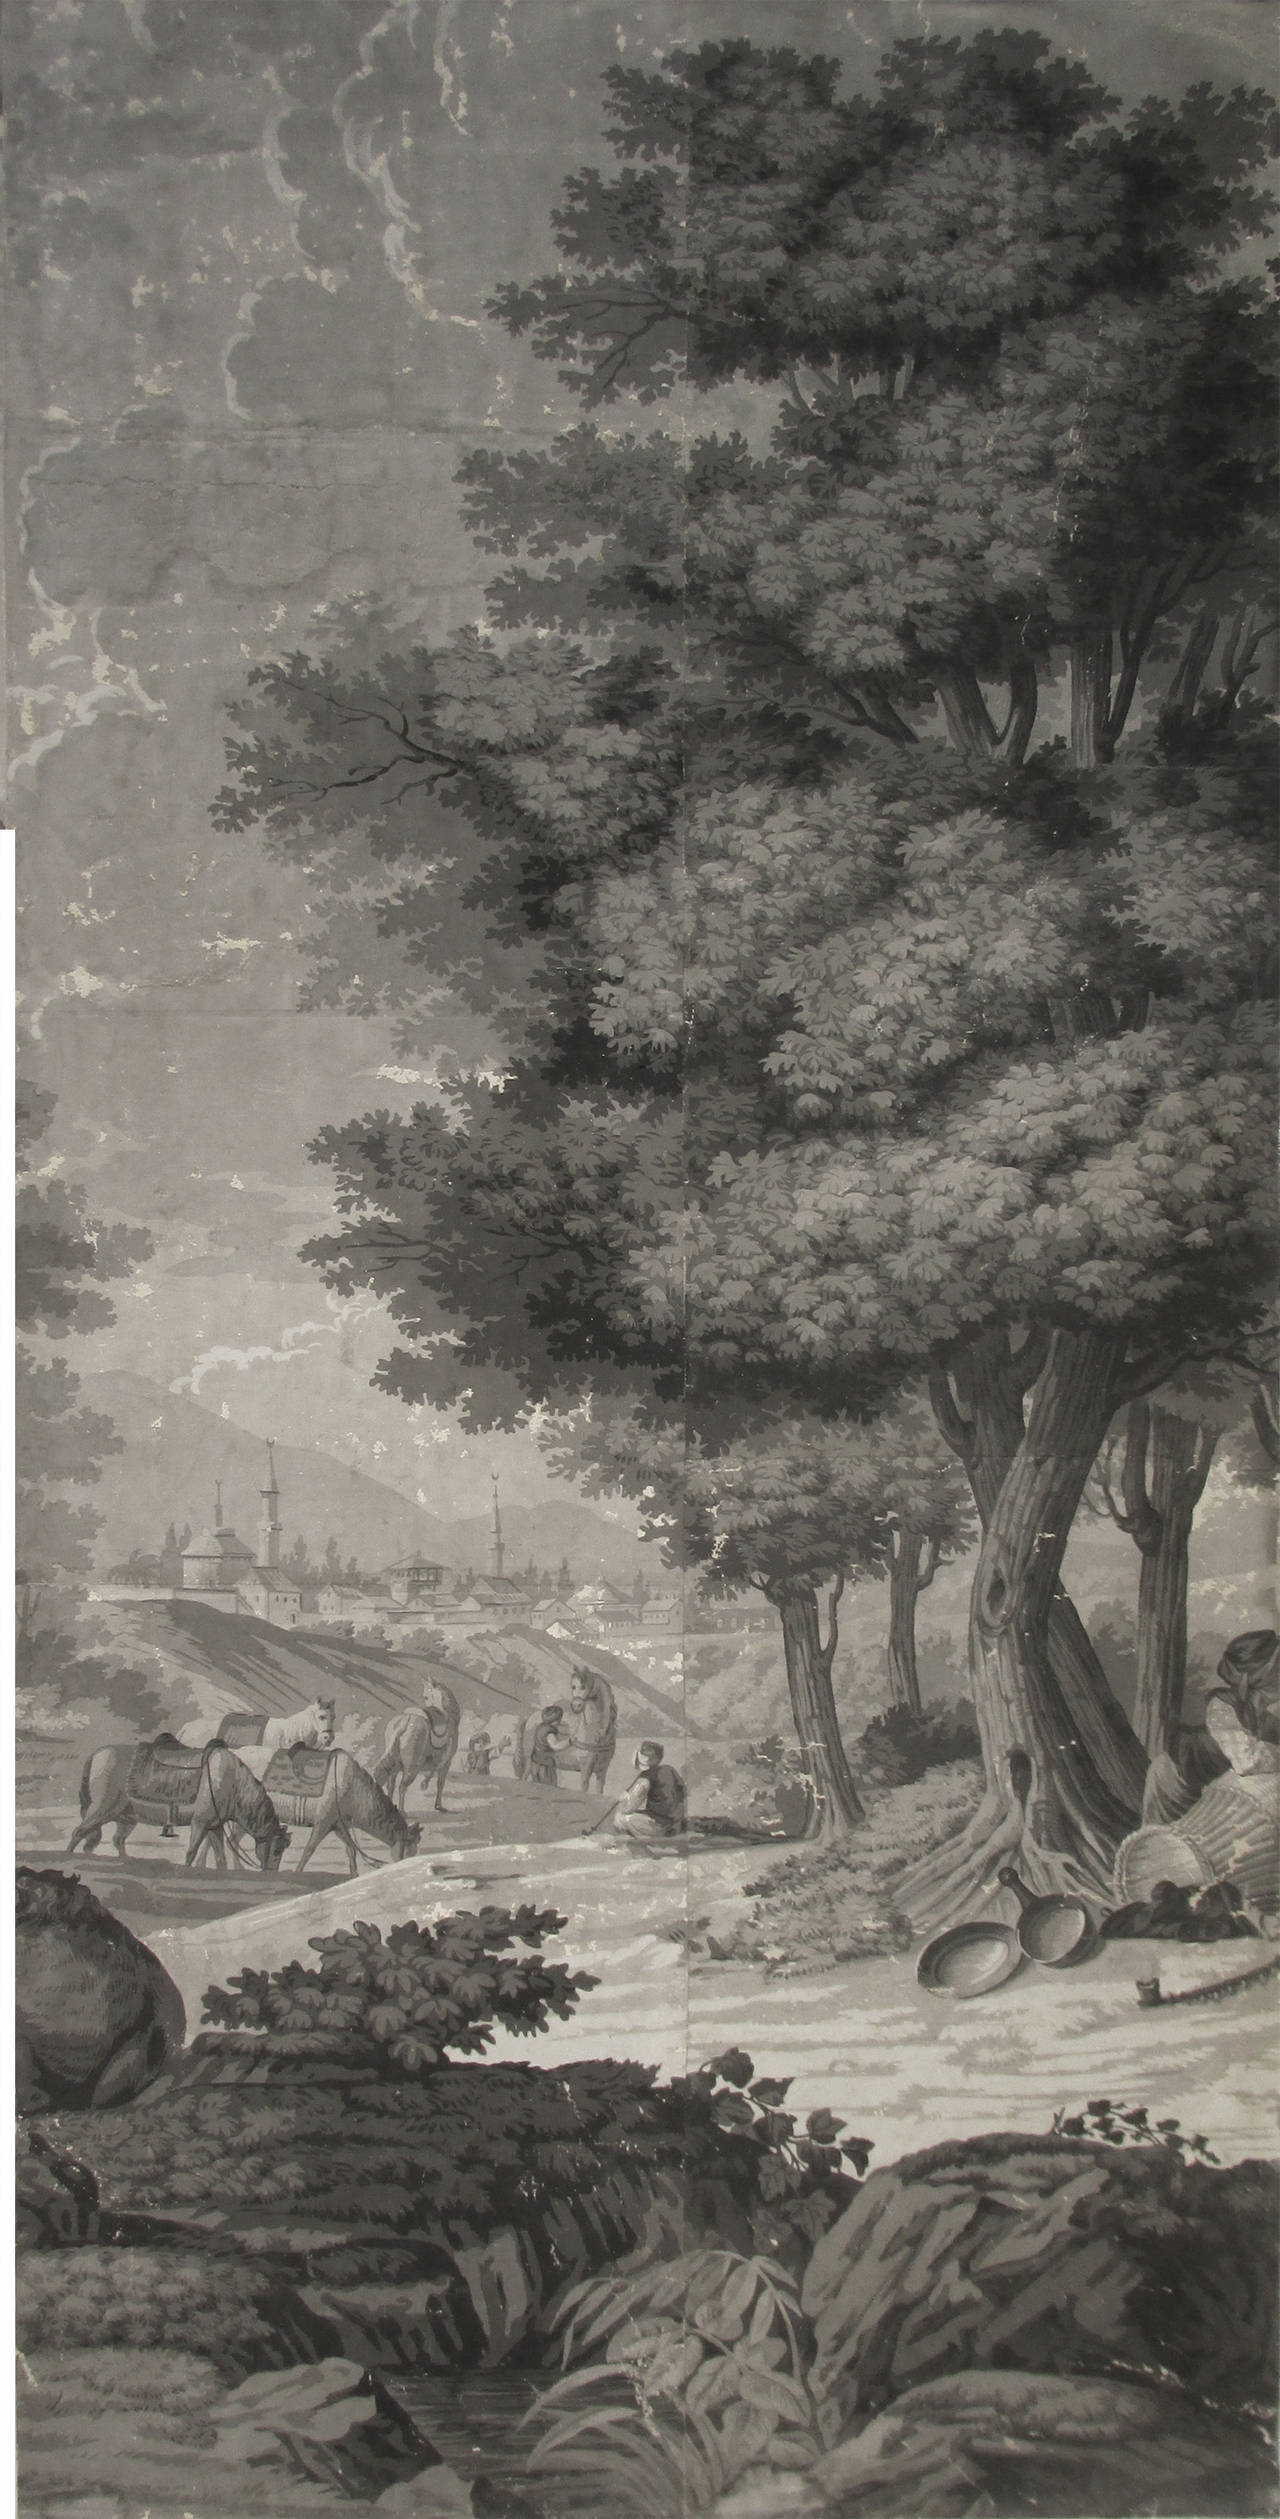 21 Wallpaper Panels, by Joseph Dufour Et Cie, After Comte de Choiseul-Gouffier 8